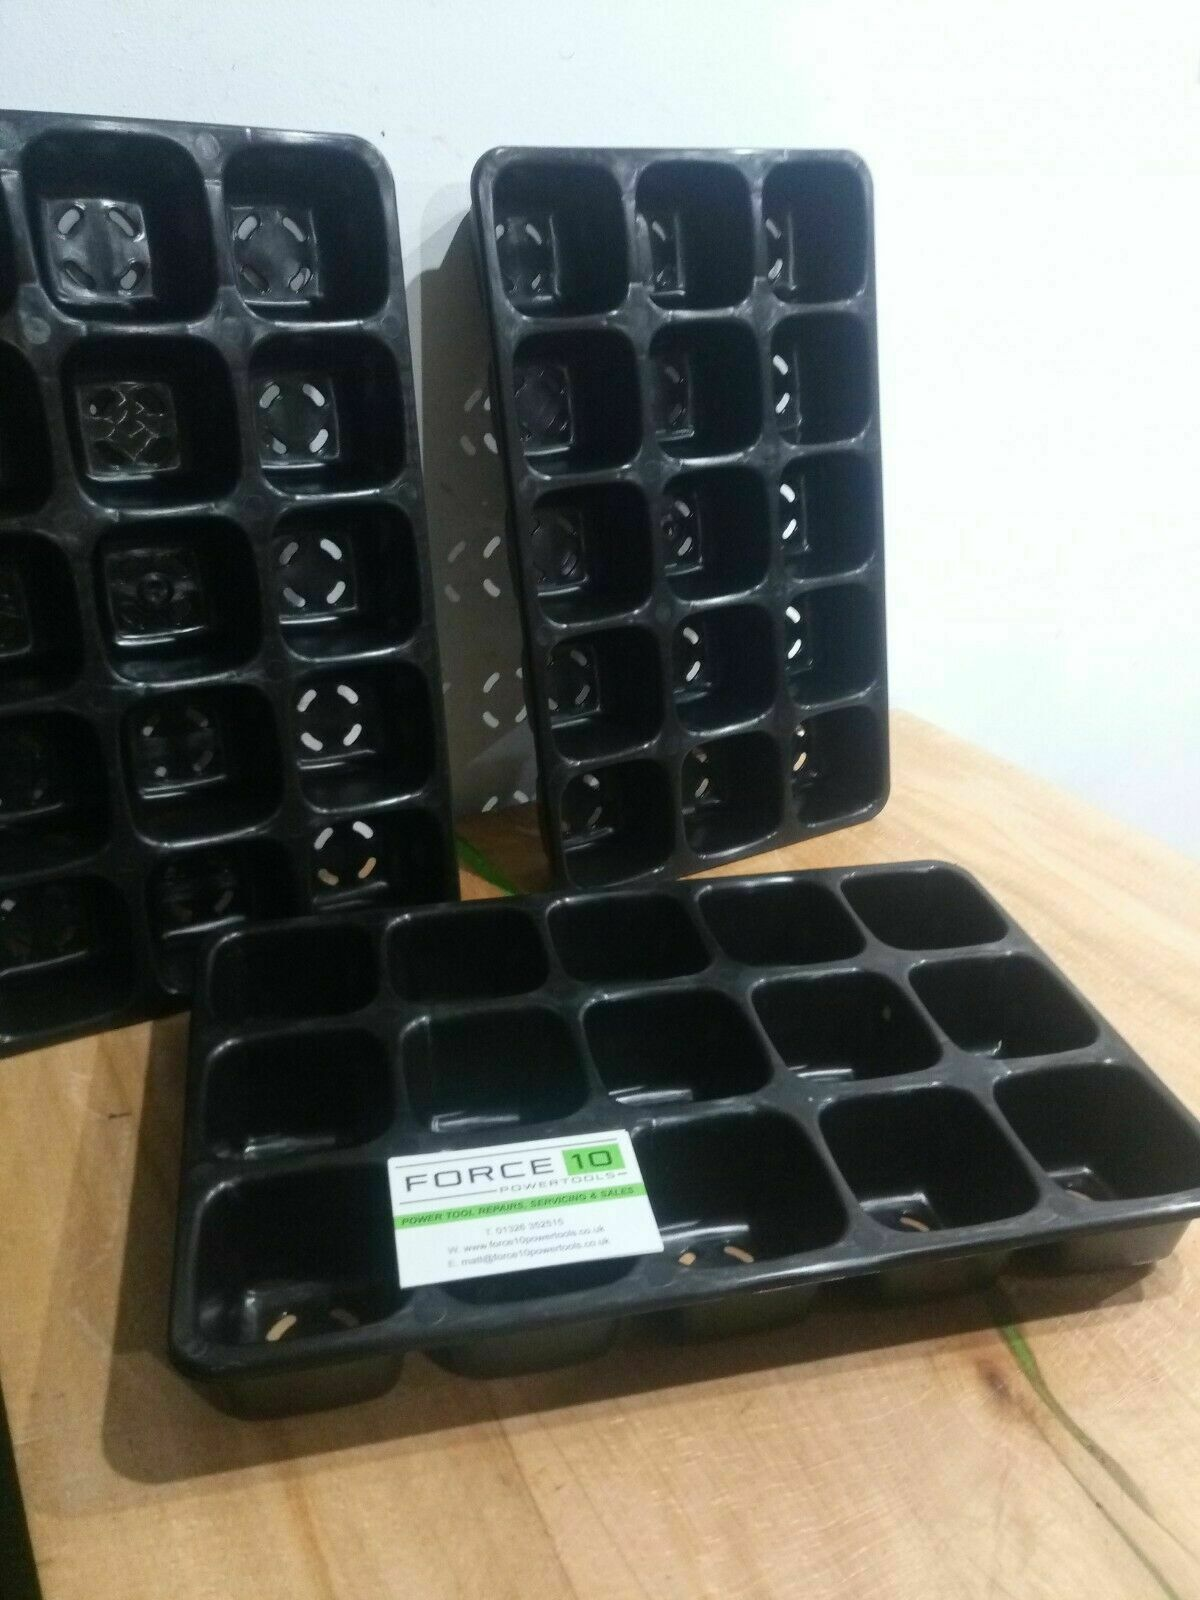 15 Cell VERY Heavy Duty Reusable Seed Trays Eco-Friendly Tough Seedling Starters